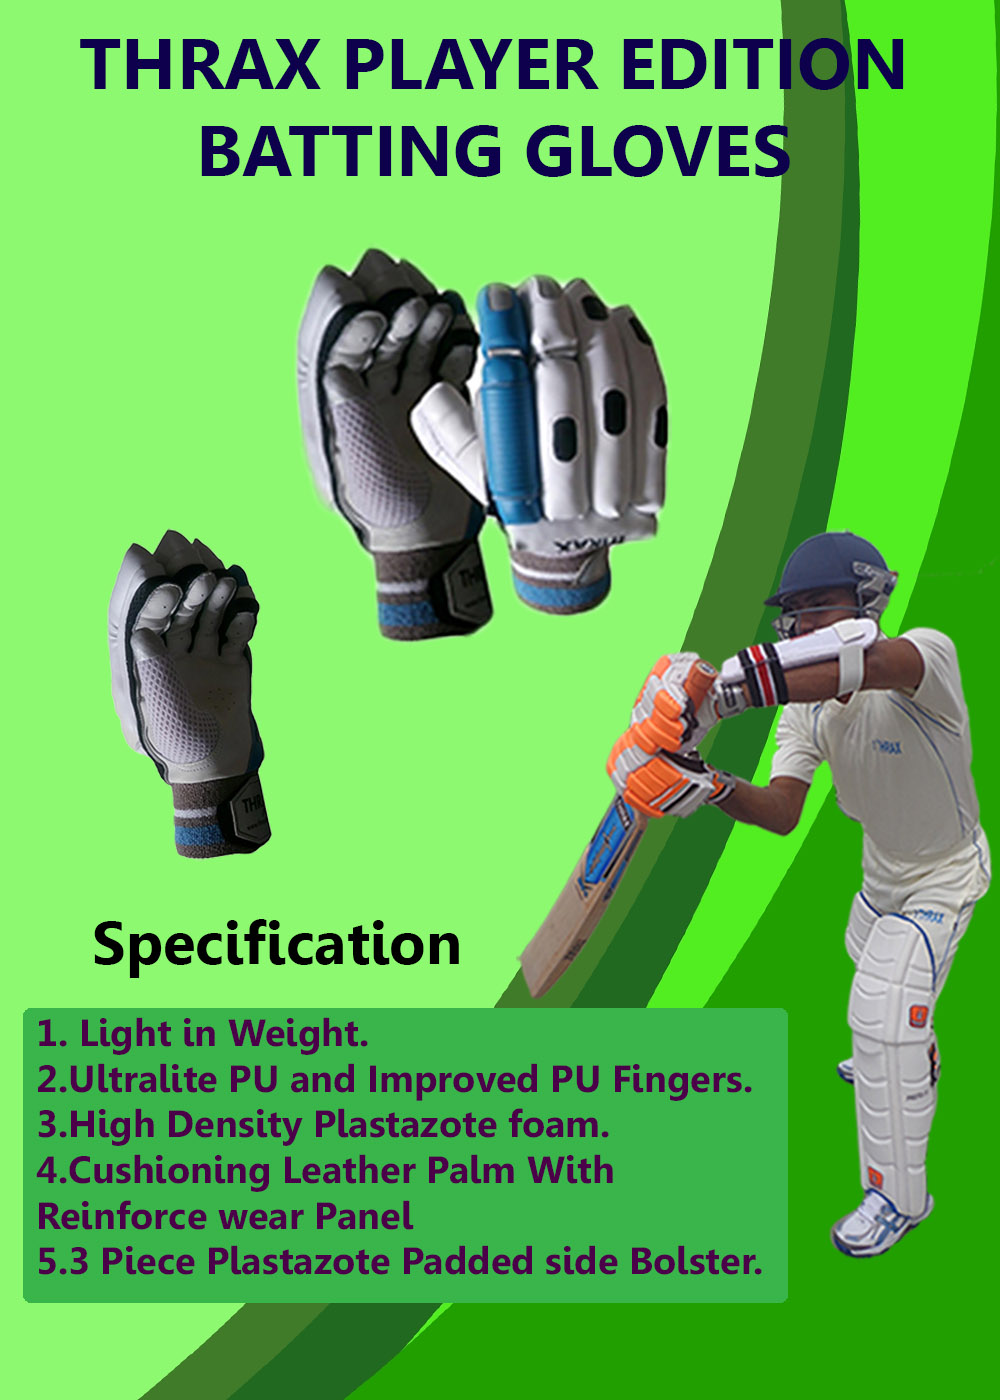 Thrax Player Edition Cricket Batting Gloves